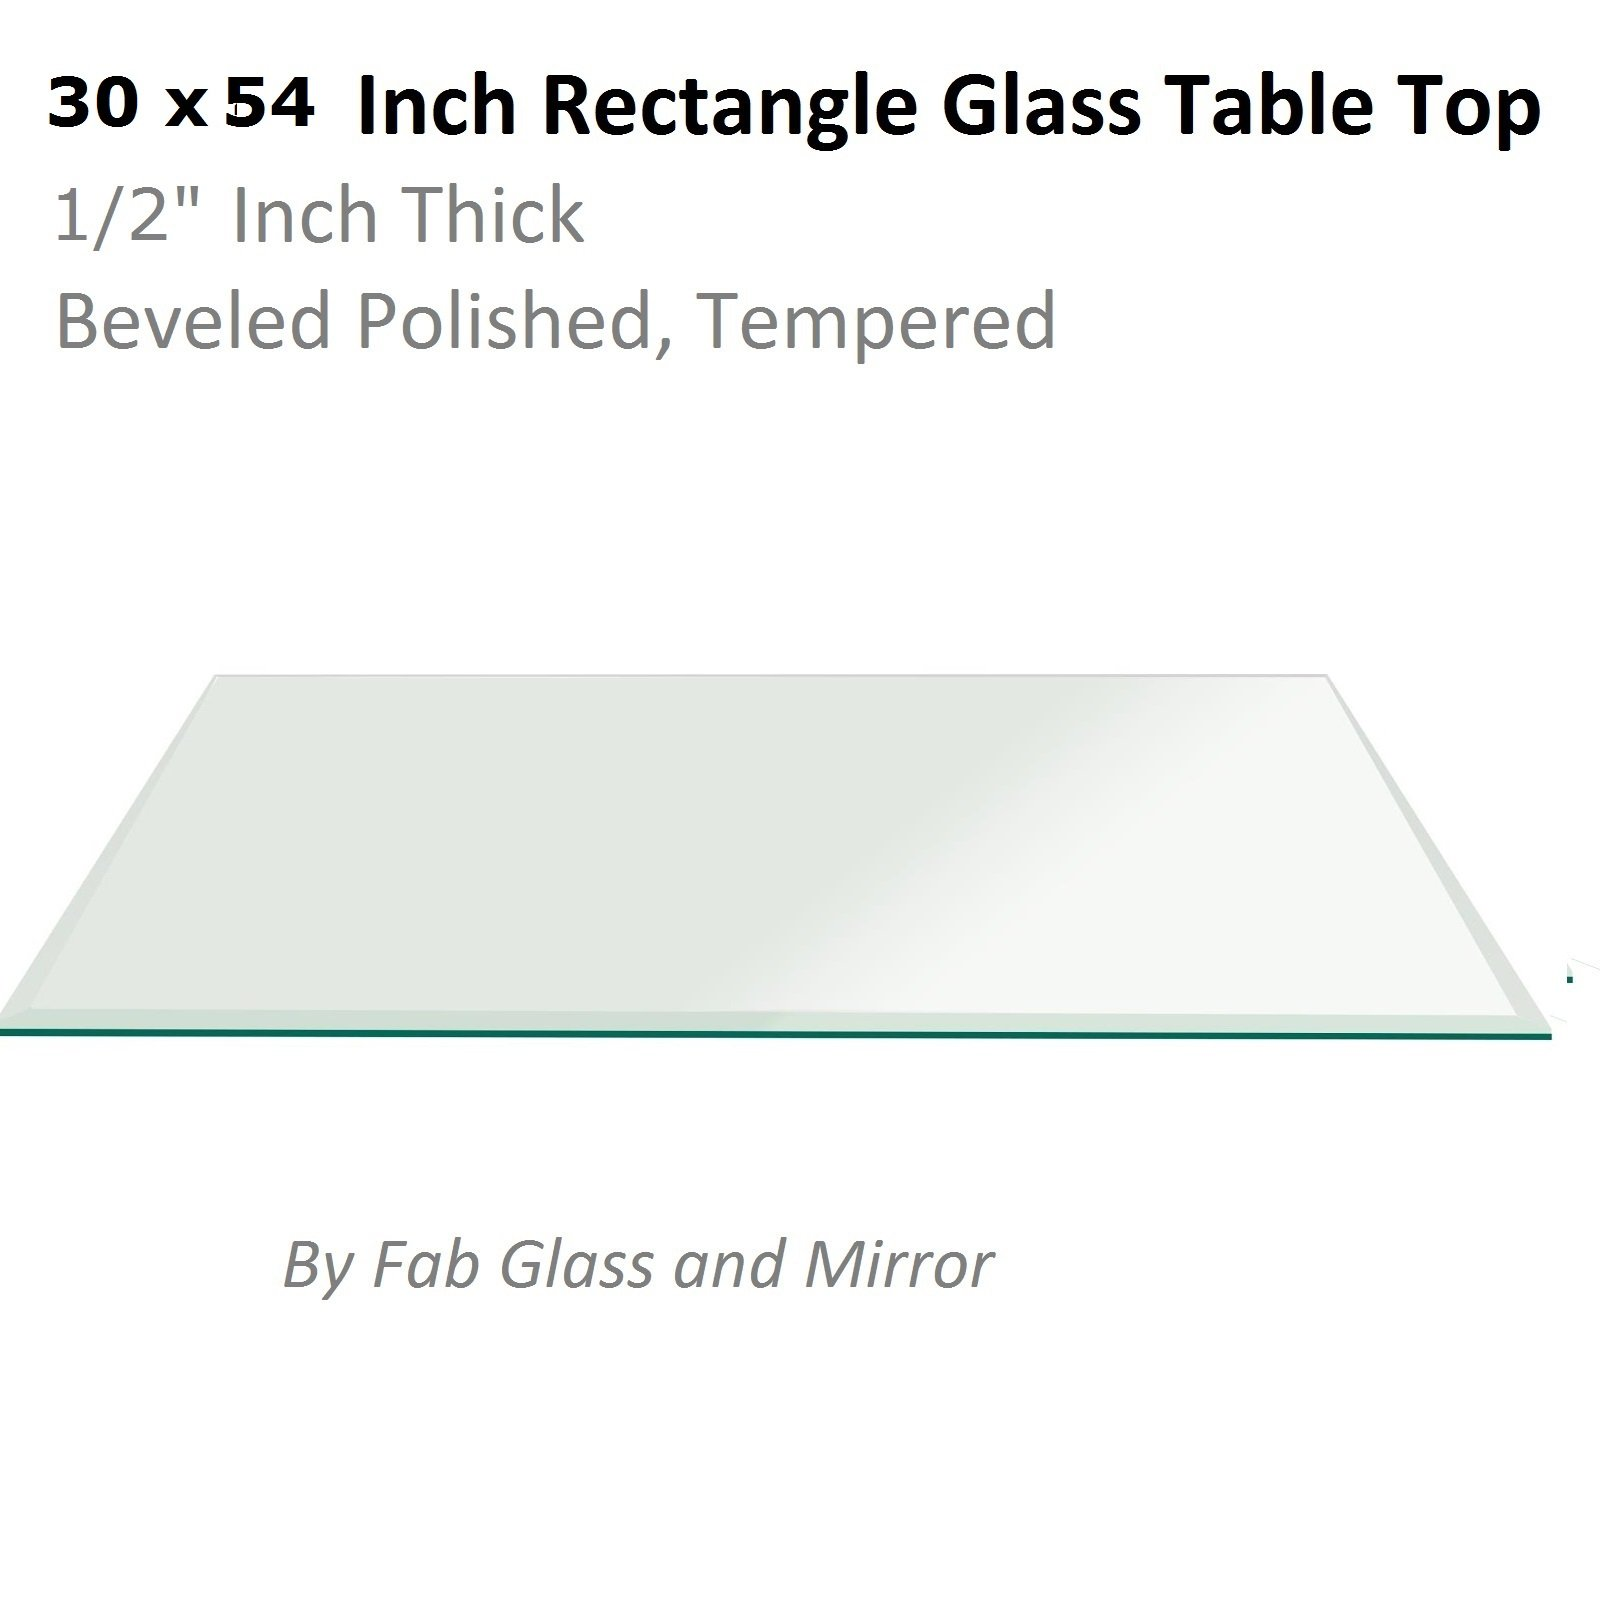 Fab Glass and Mirror T-30x54REC12THBETE Rectangle Glass Table Top 30'' x 54'' Clear